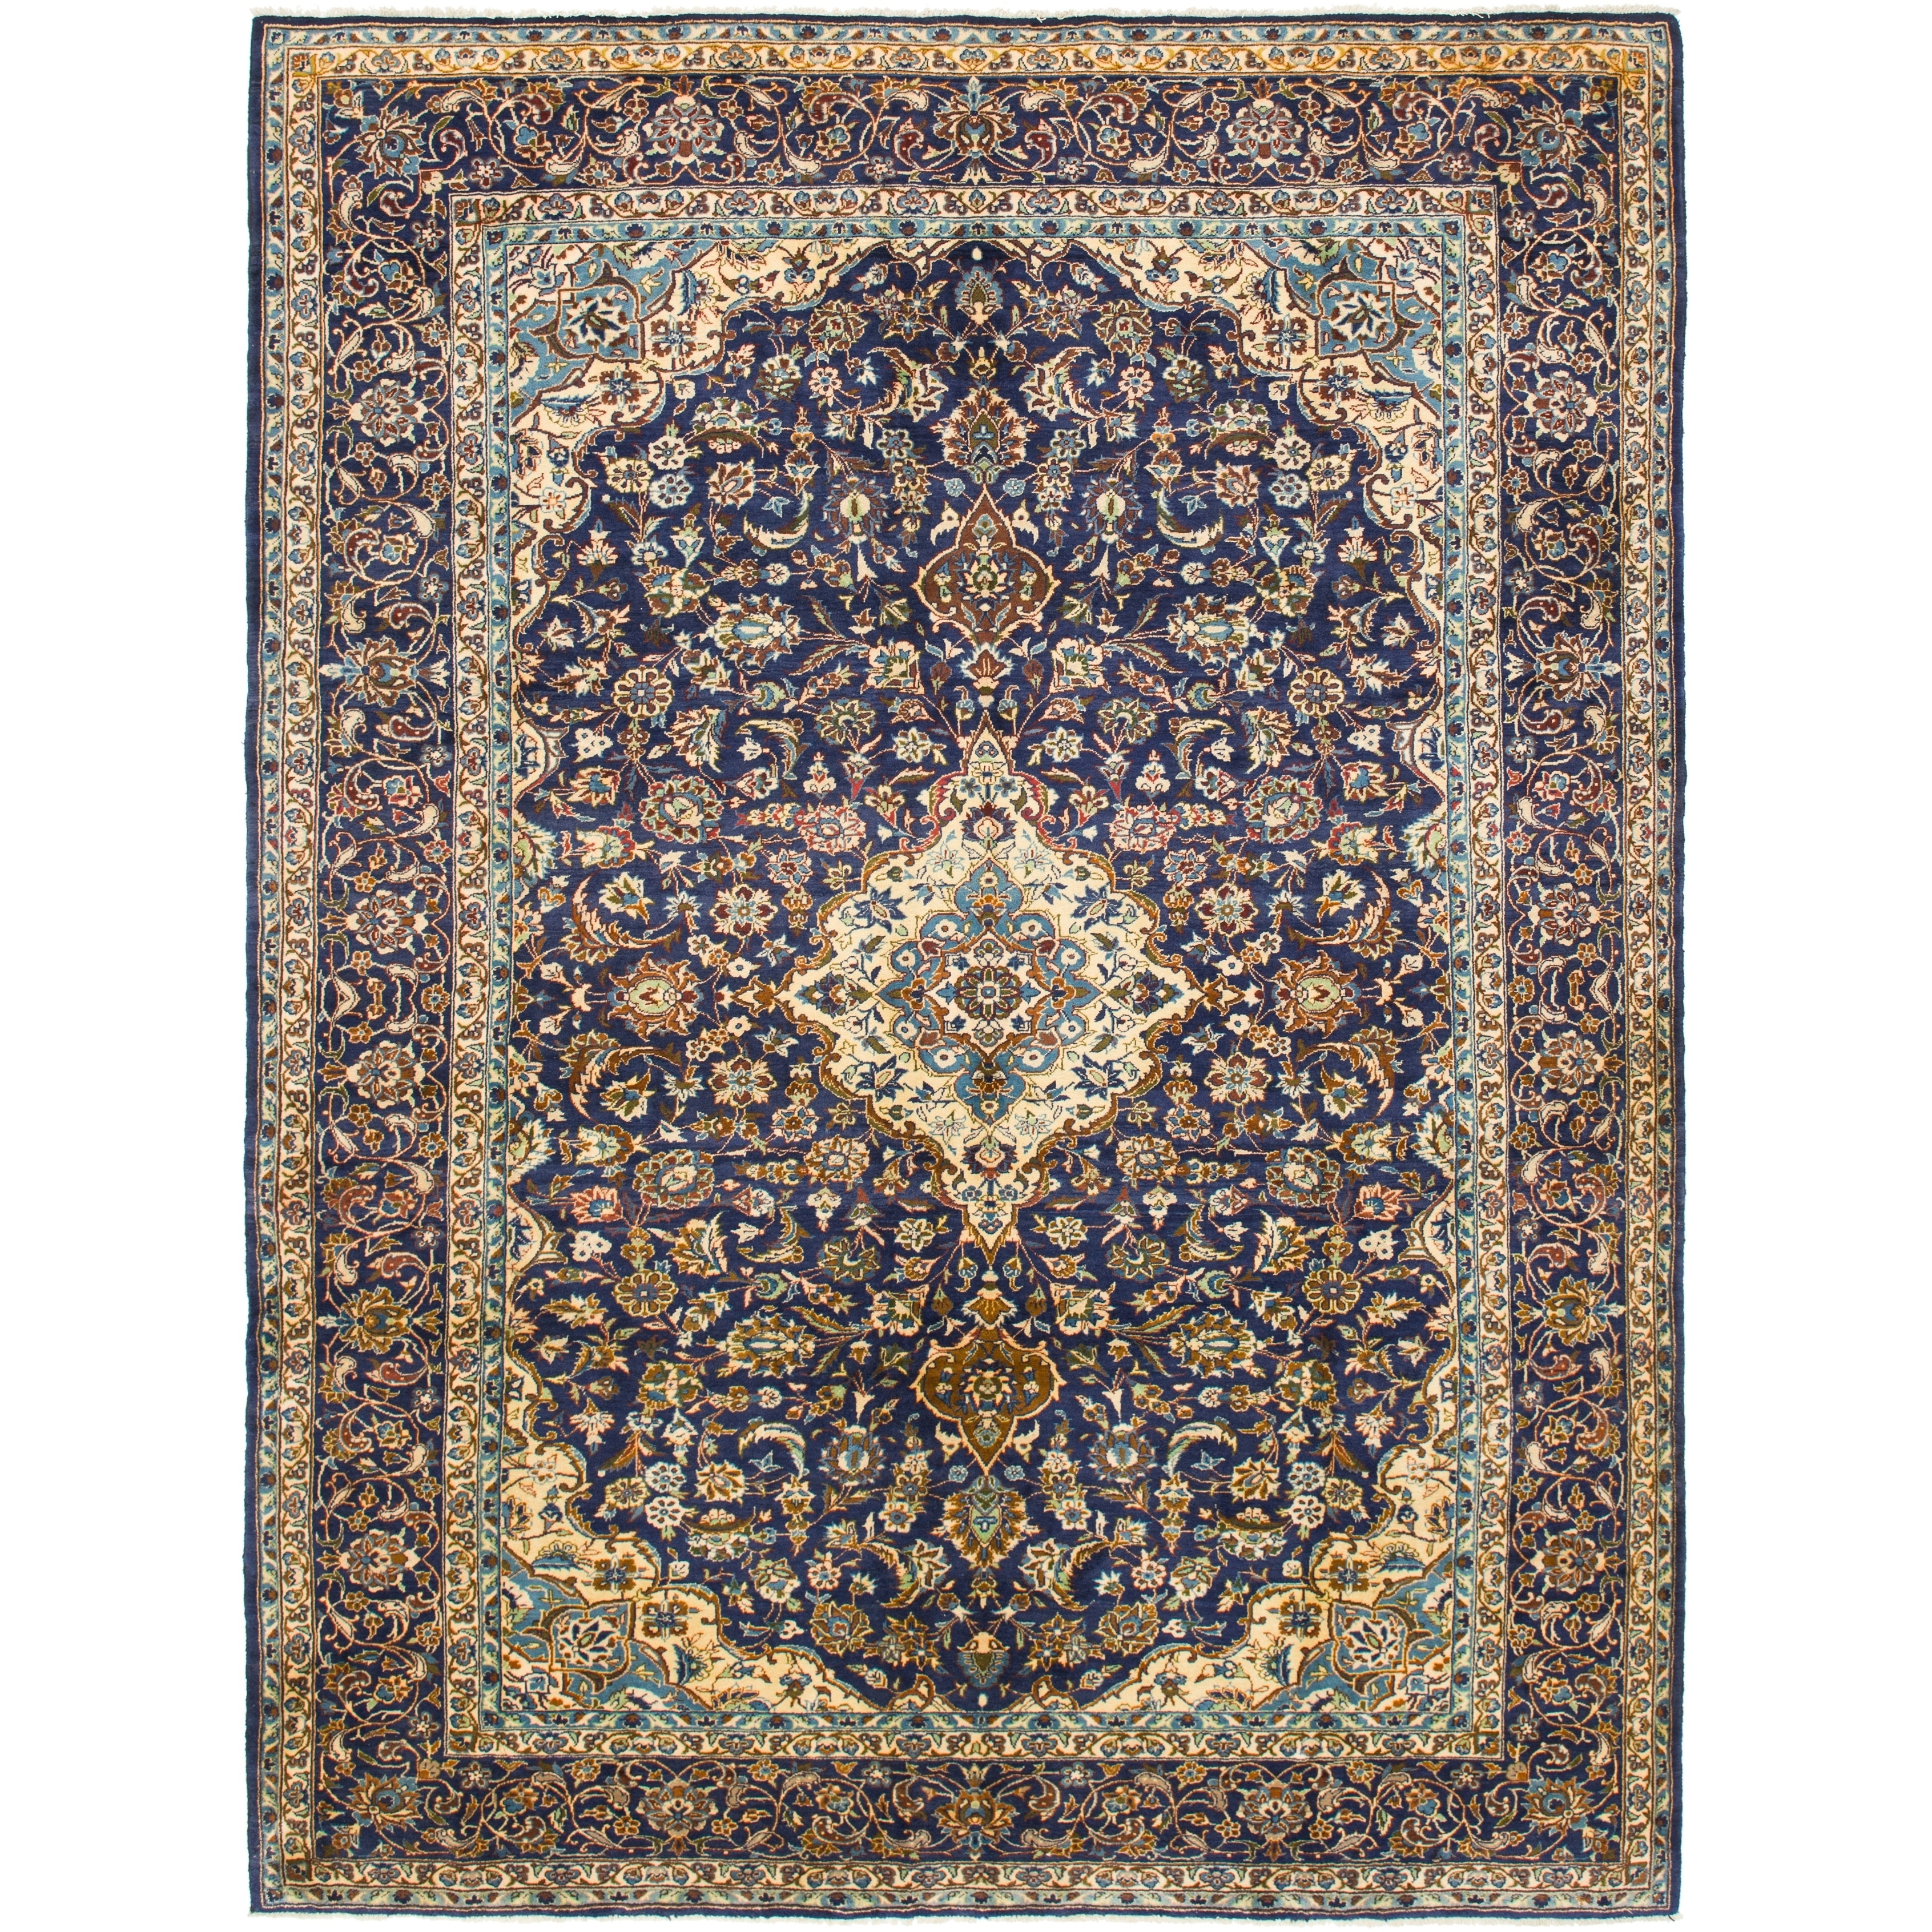 Hand Knotted Kashmar Semi Antique Wool Area Rug - 9 9 x 13 (Navy blue - 9 9 x 13)